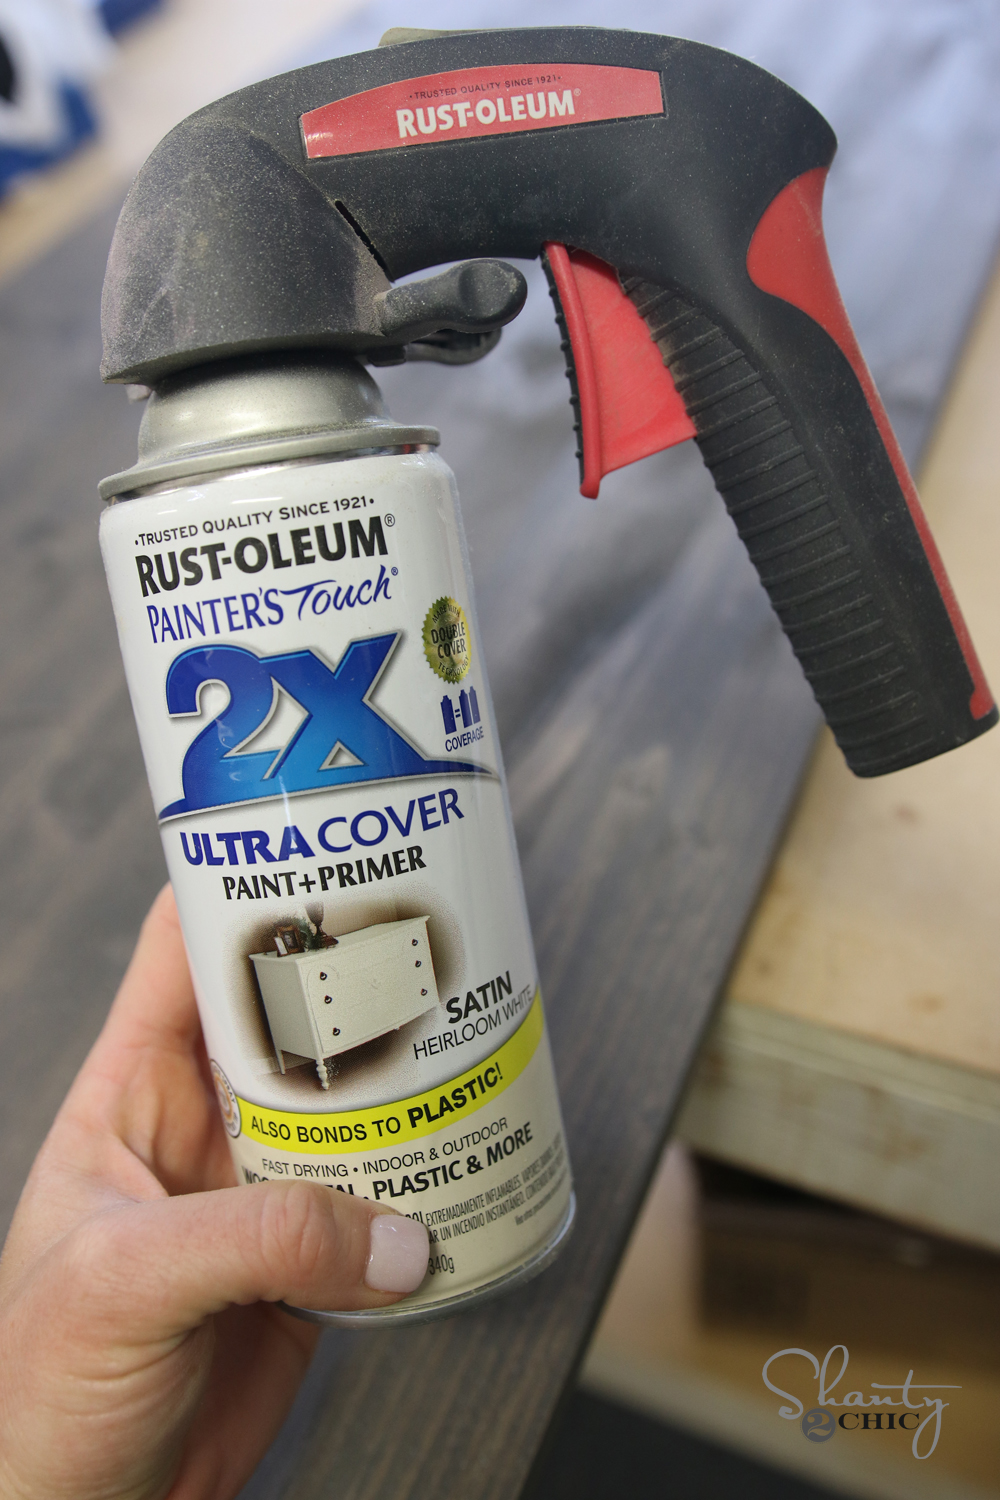 Rustoleum Heirloom White Spray Paint